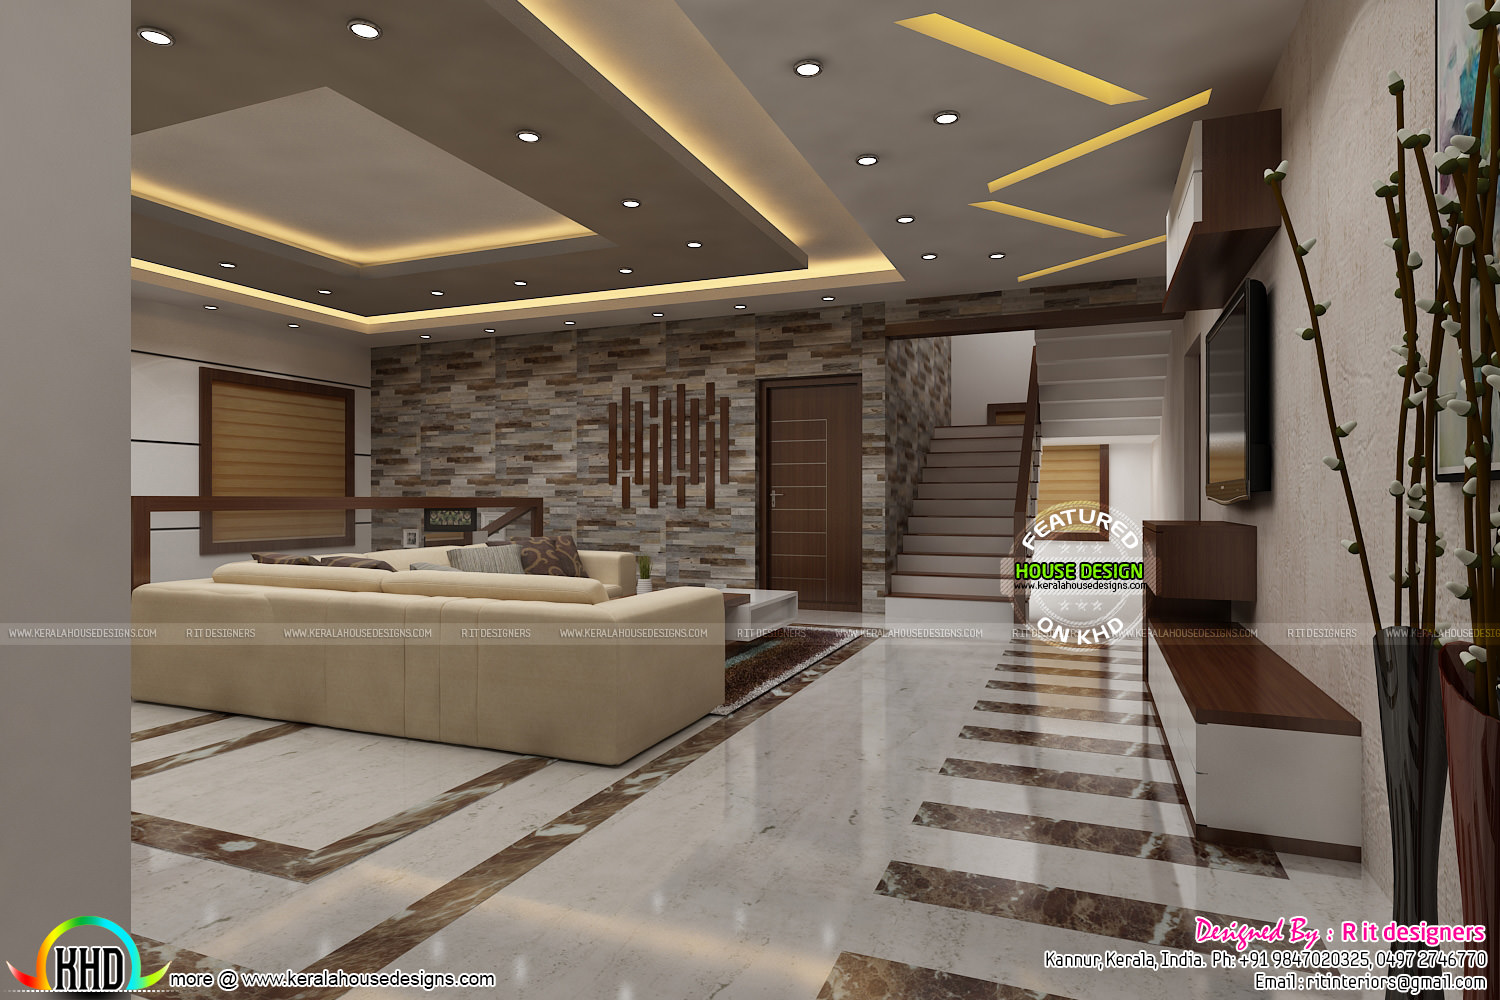 Most modern kerala living room interior kerala home for Drawing room interior design photos